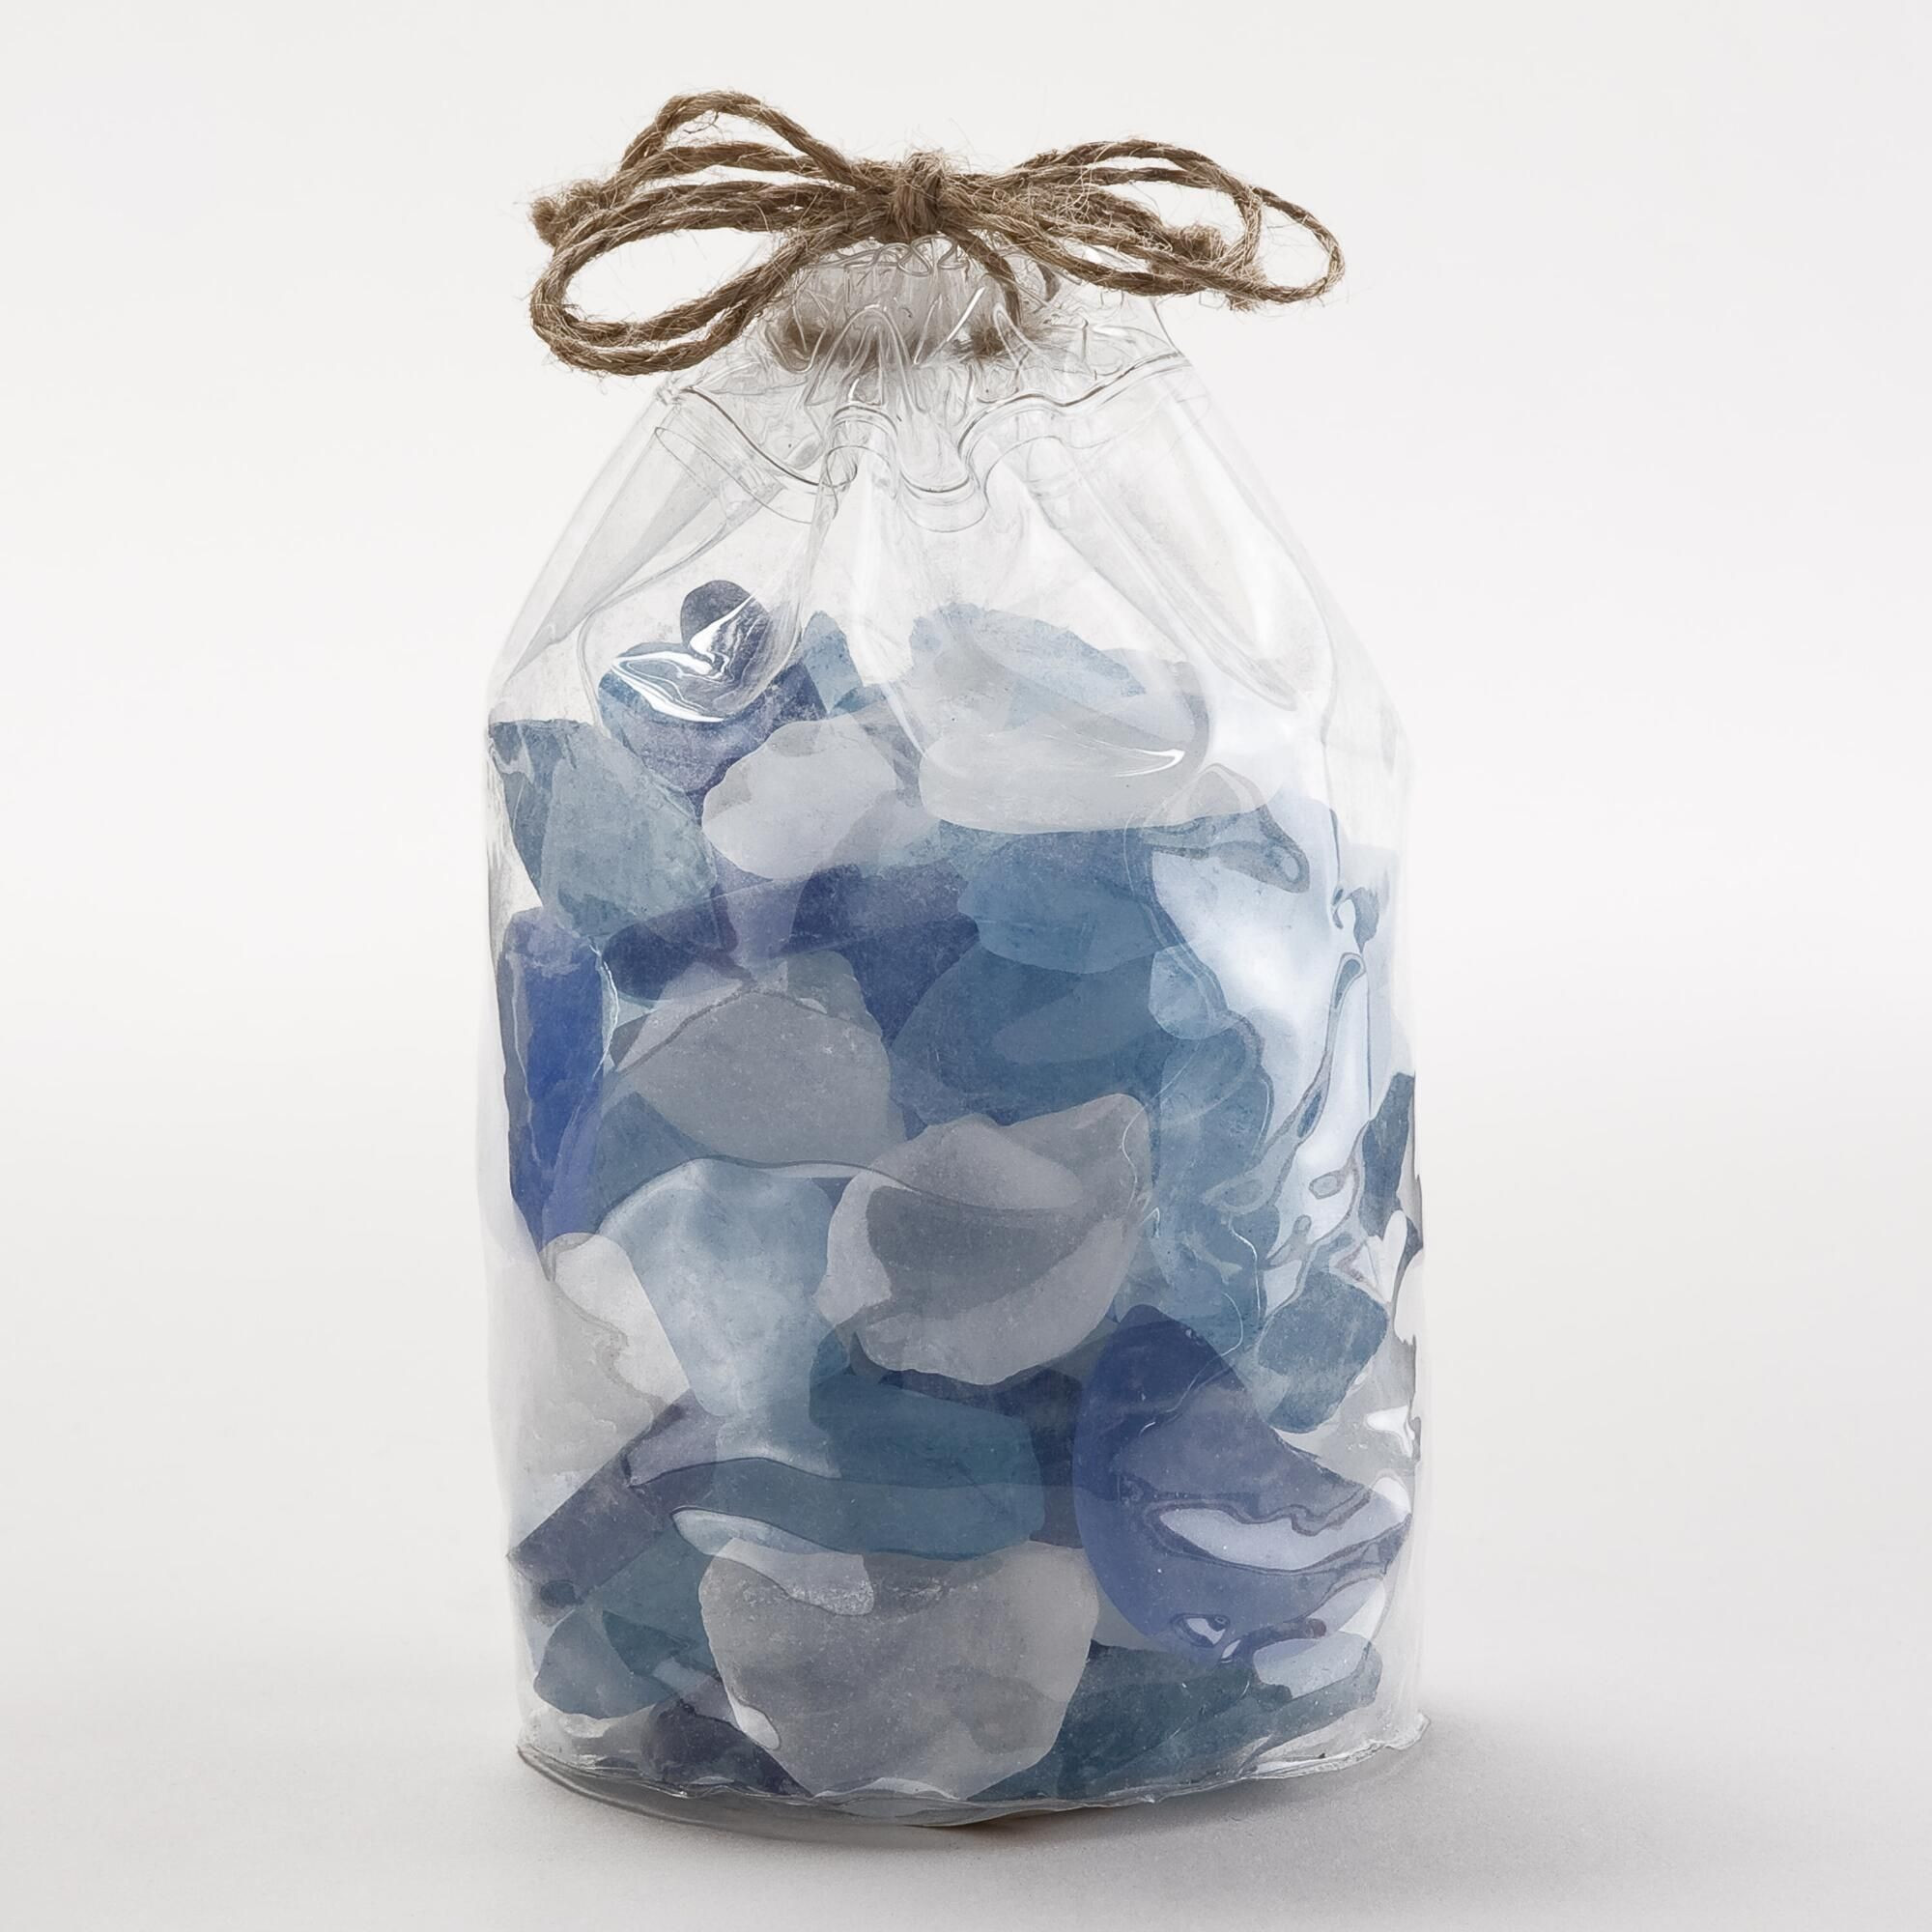 clear gem vase fillers of add a touch of the ocean with our blue seaglass vase fillers use inside add a touch of the ocean with our blue seaglass vase fillers use them in